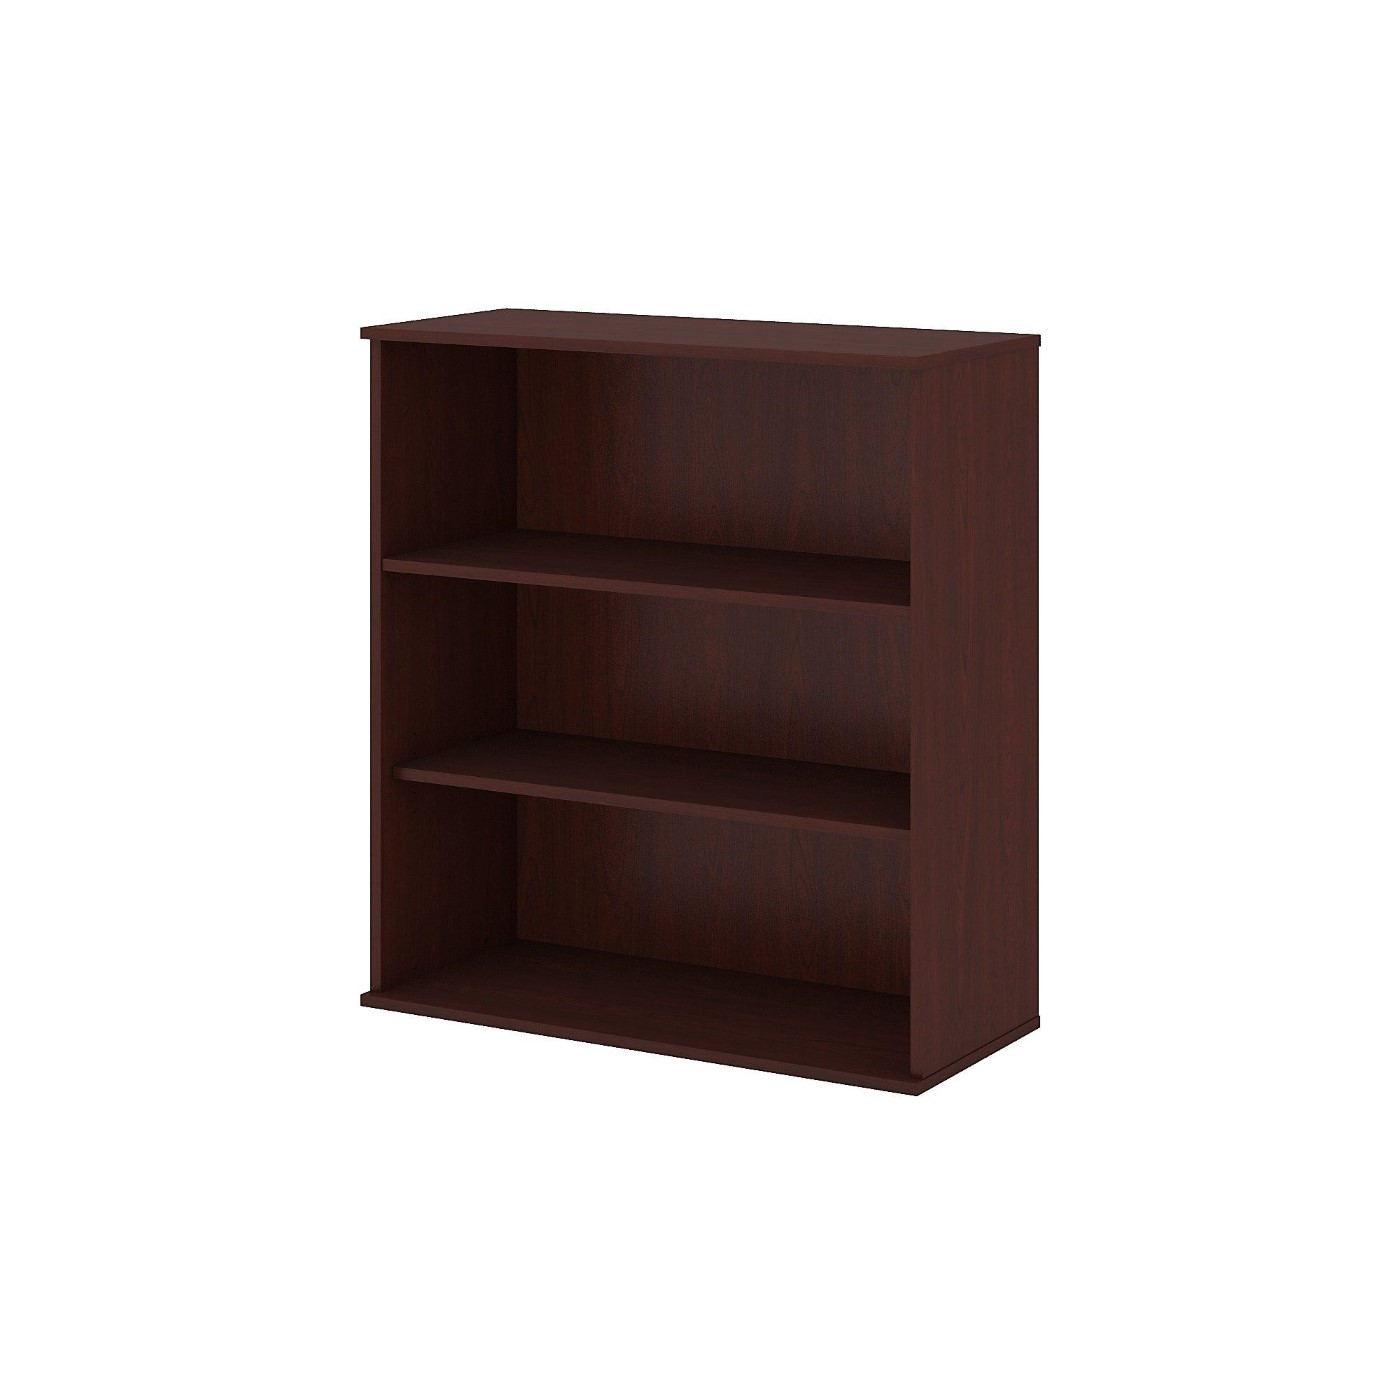 <font color=#c60><b>BUSH BUSINESS FURNITURE 48H 3 SHELF BOOKCASE. FREE SHIPPING</font></b></font></b>